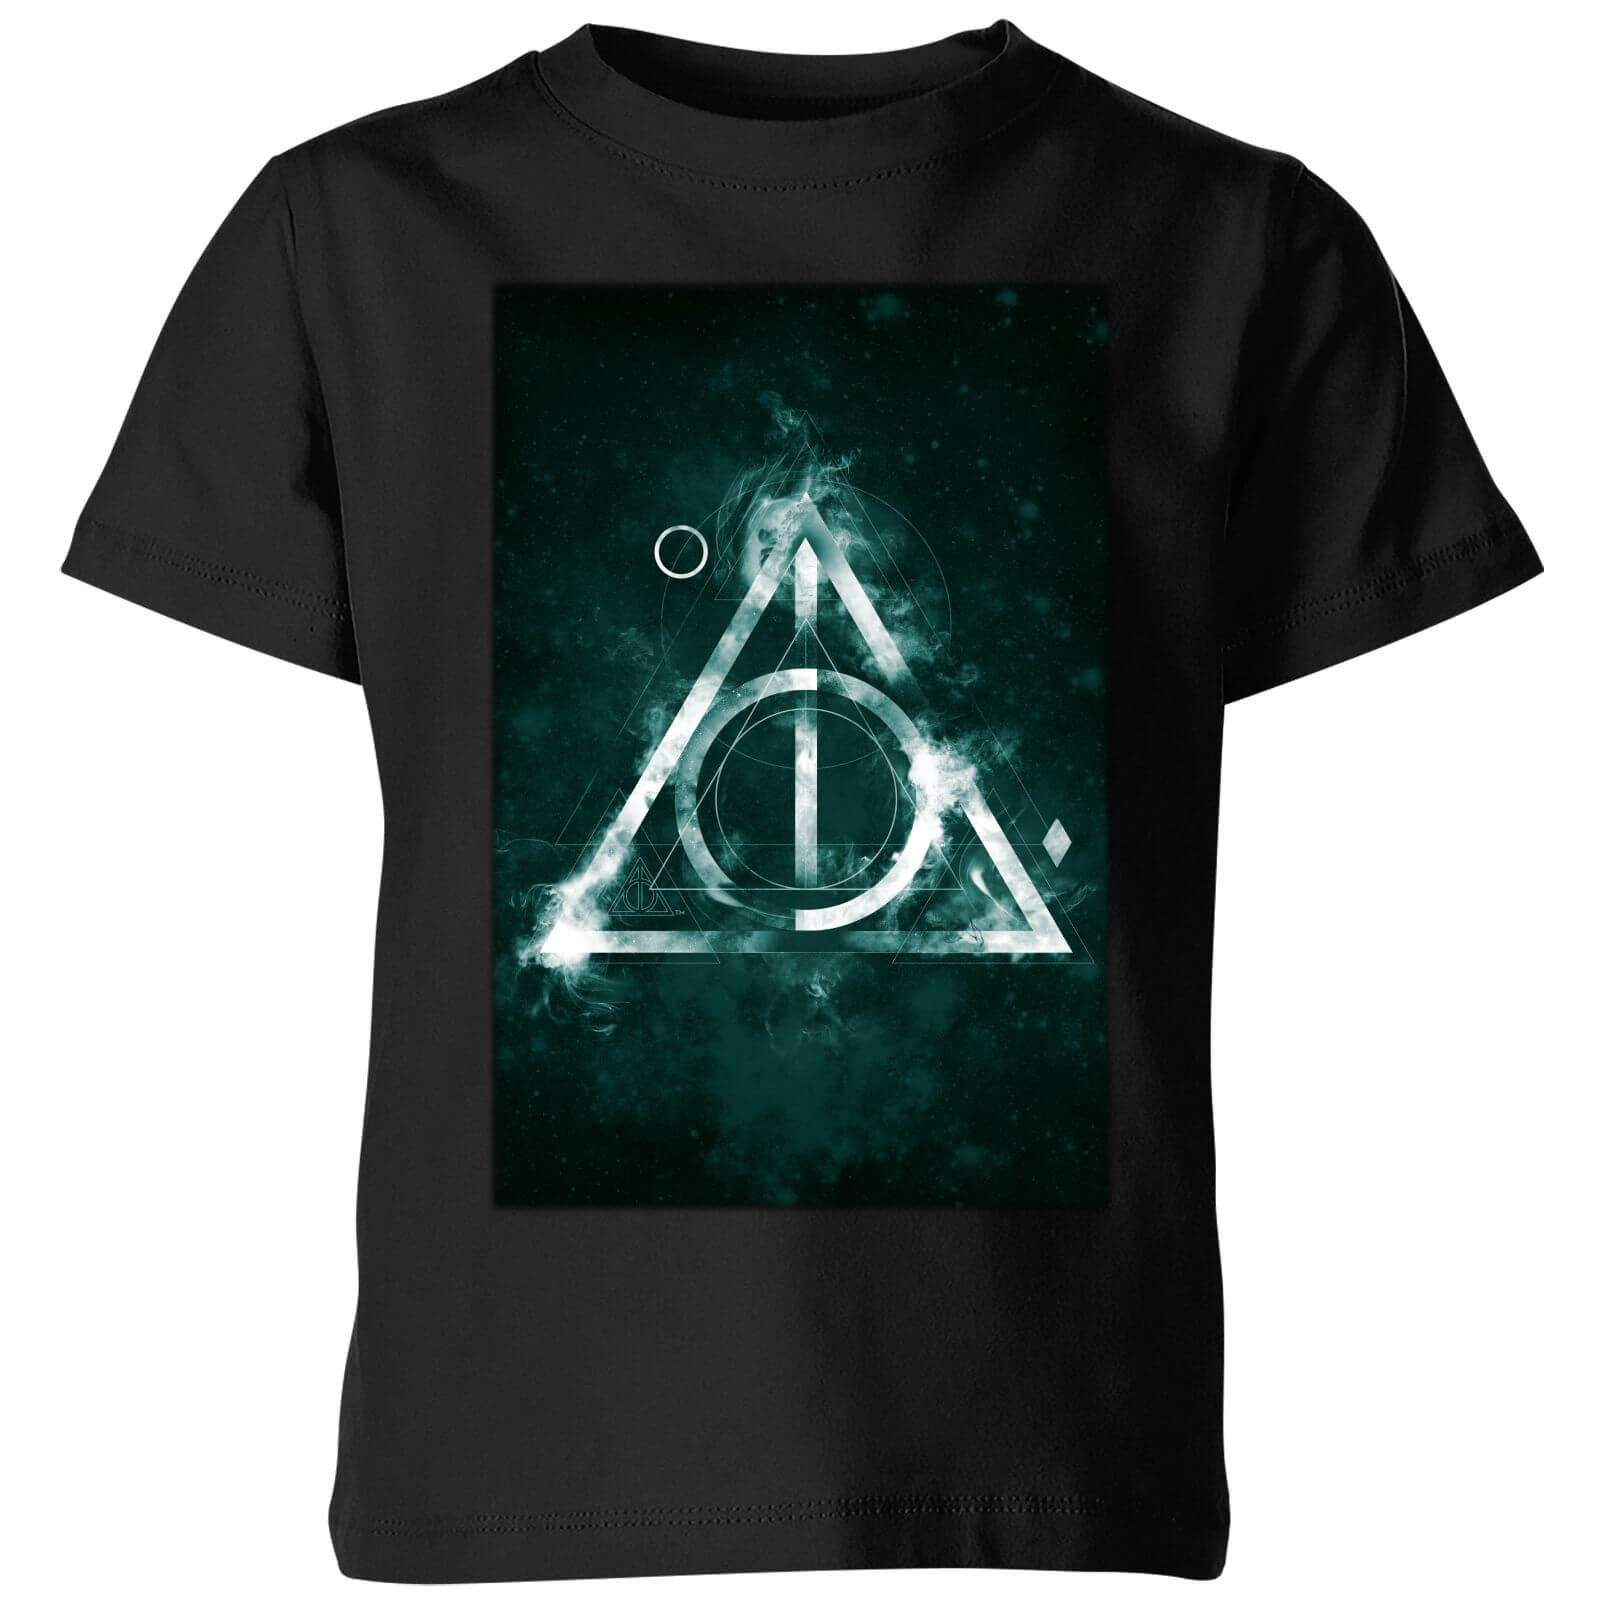 Harry Potter Hallows Painted Kids' T-Shirt - Black - 3-4 años - Negro de Harry Potter